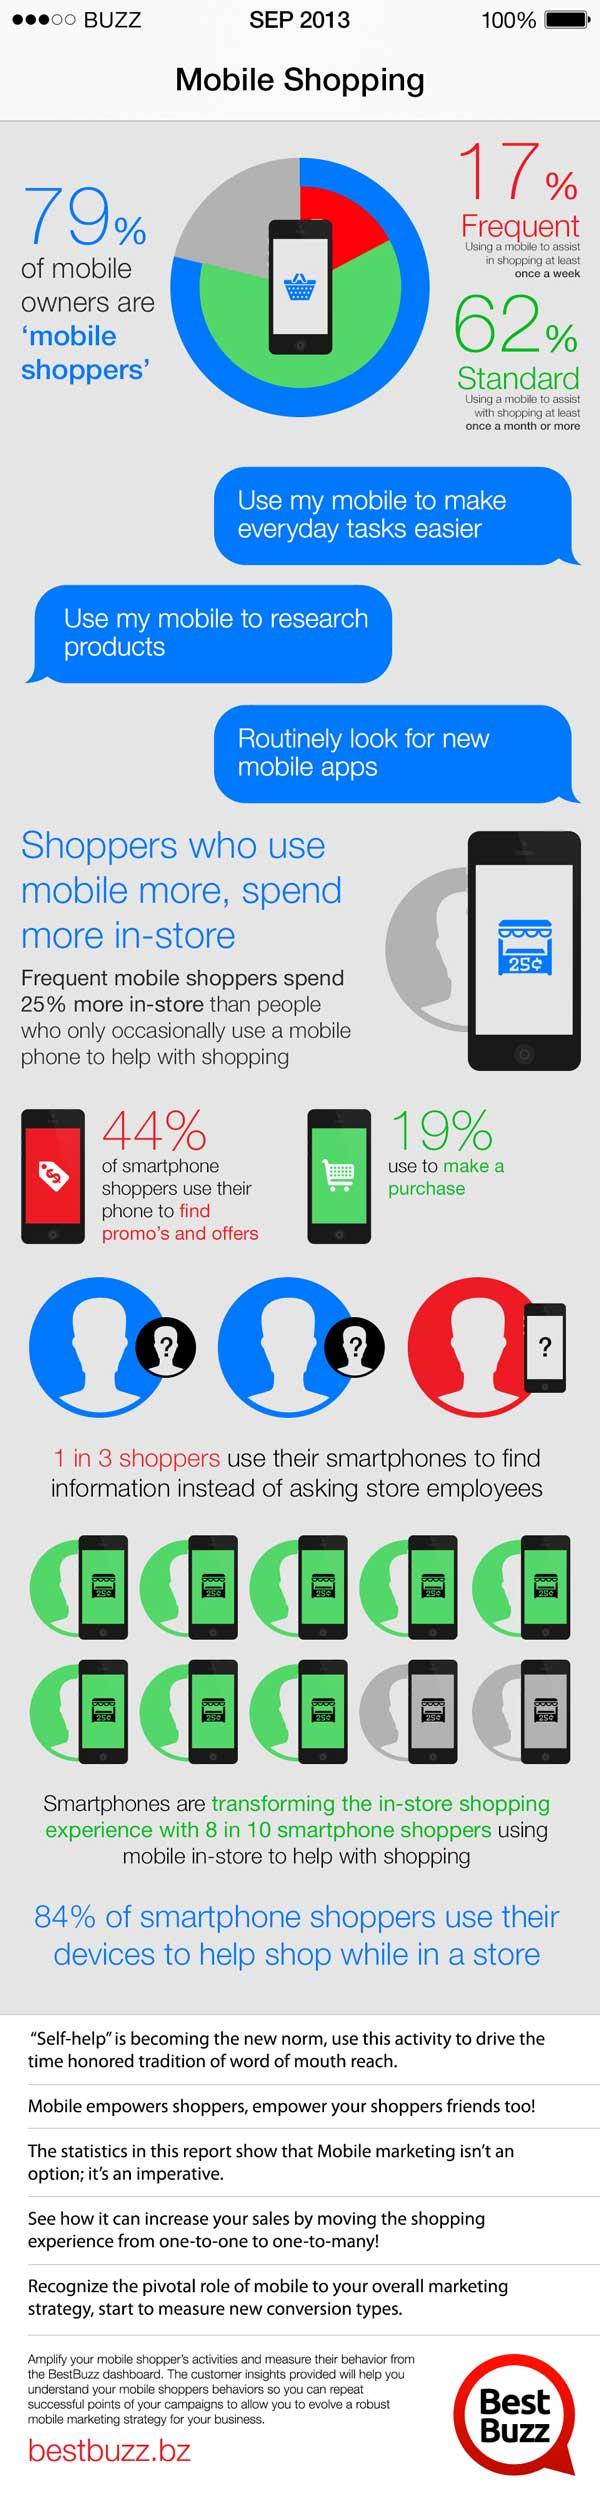 Mobile Shopping Infographic copy